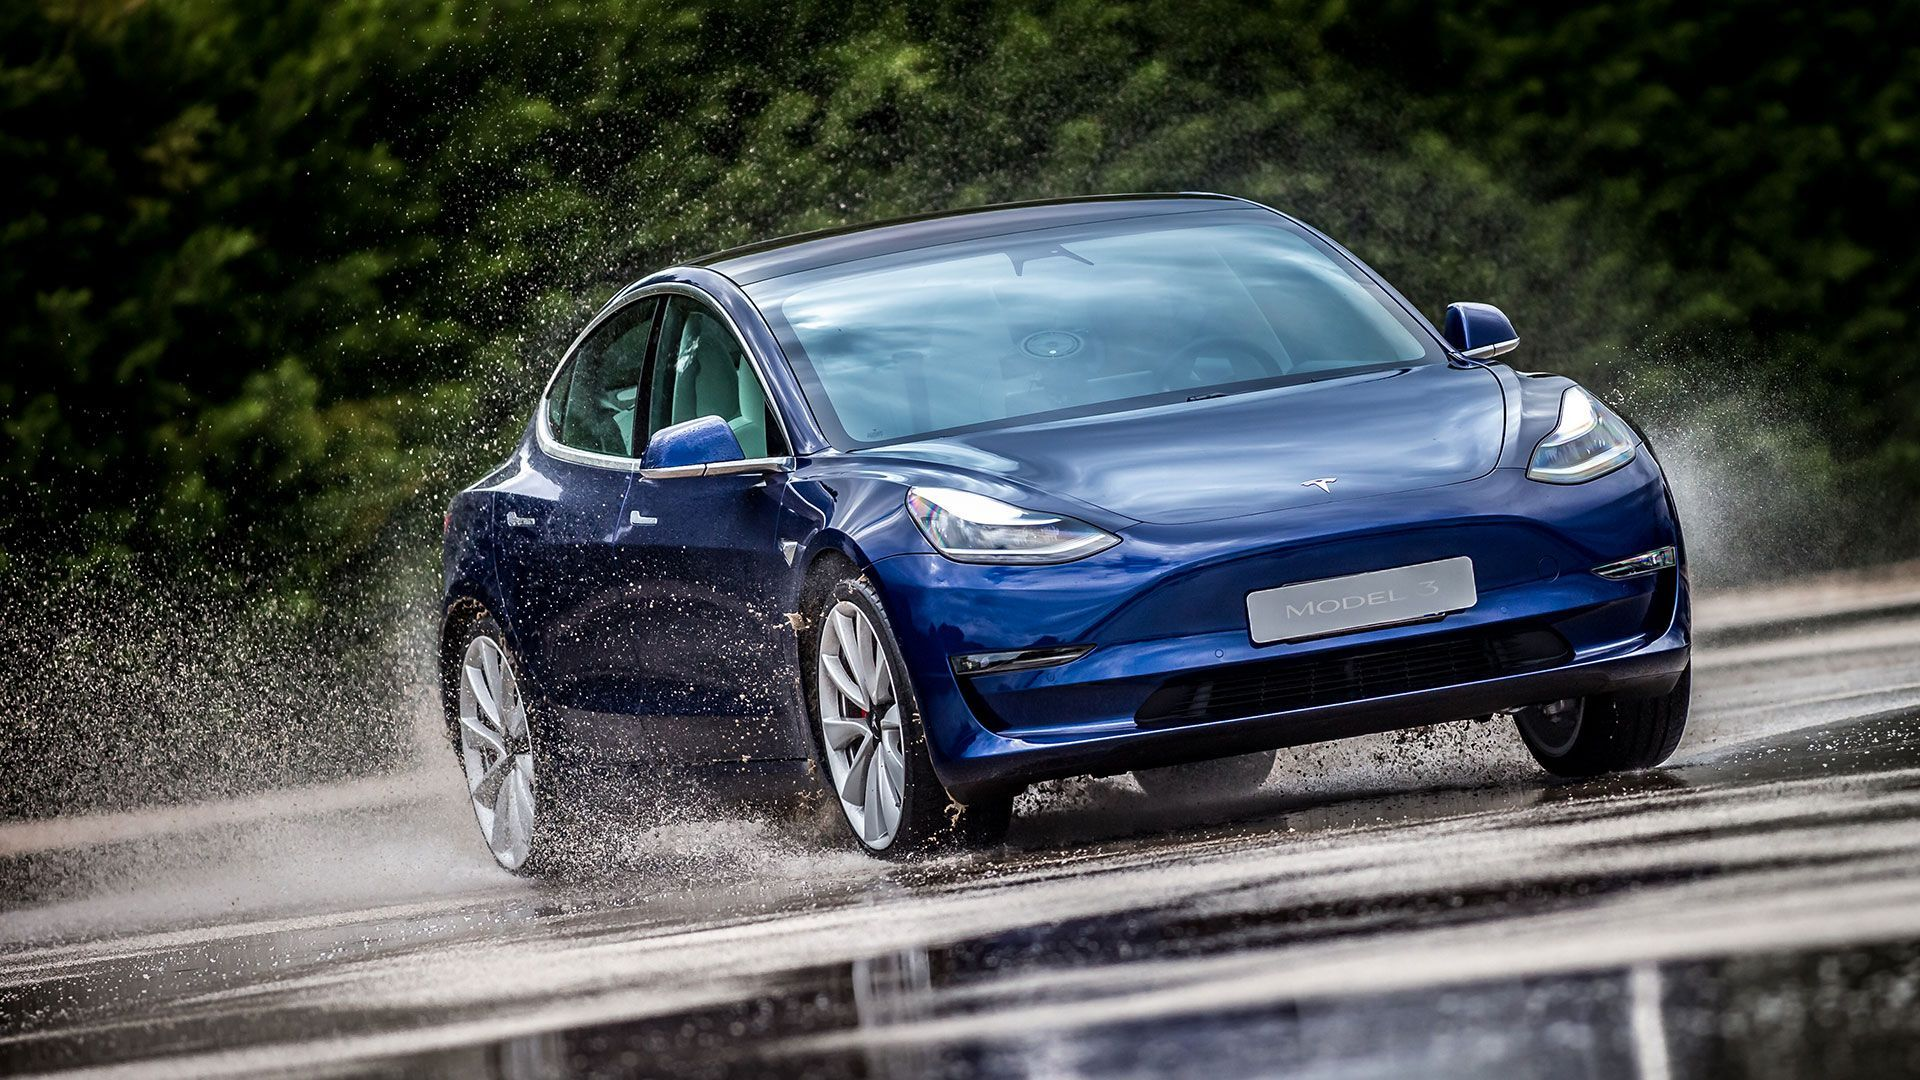 Tesla Model 3 Dominates UK With 1 in 6 New Car Registrations in April